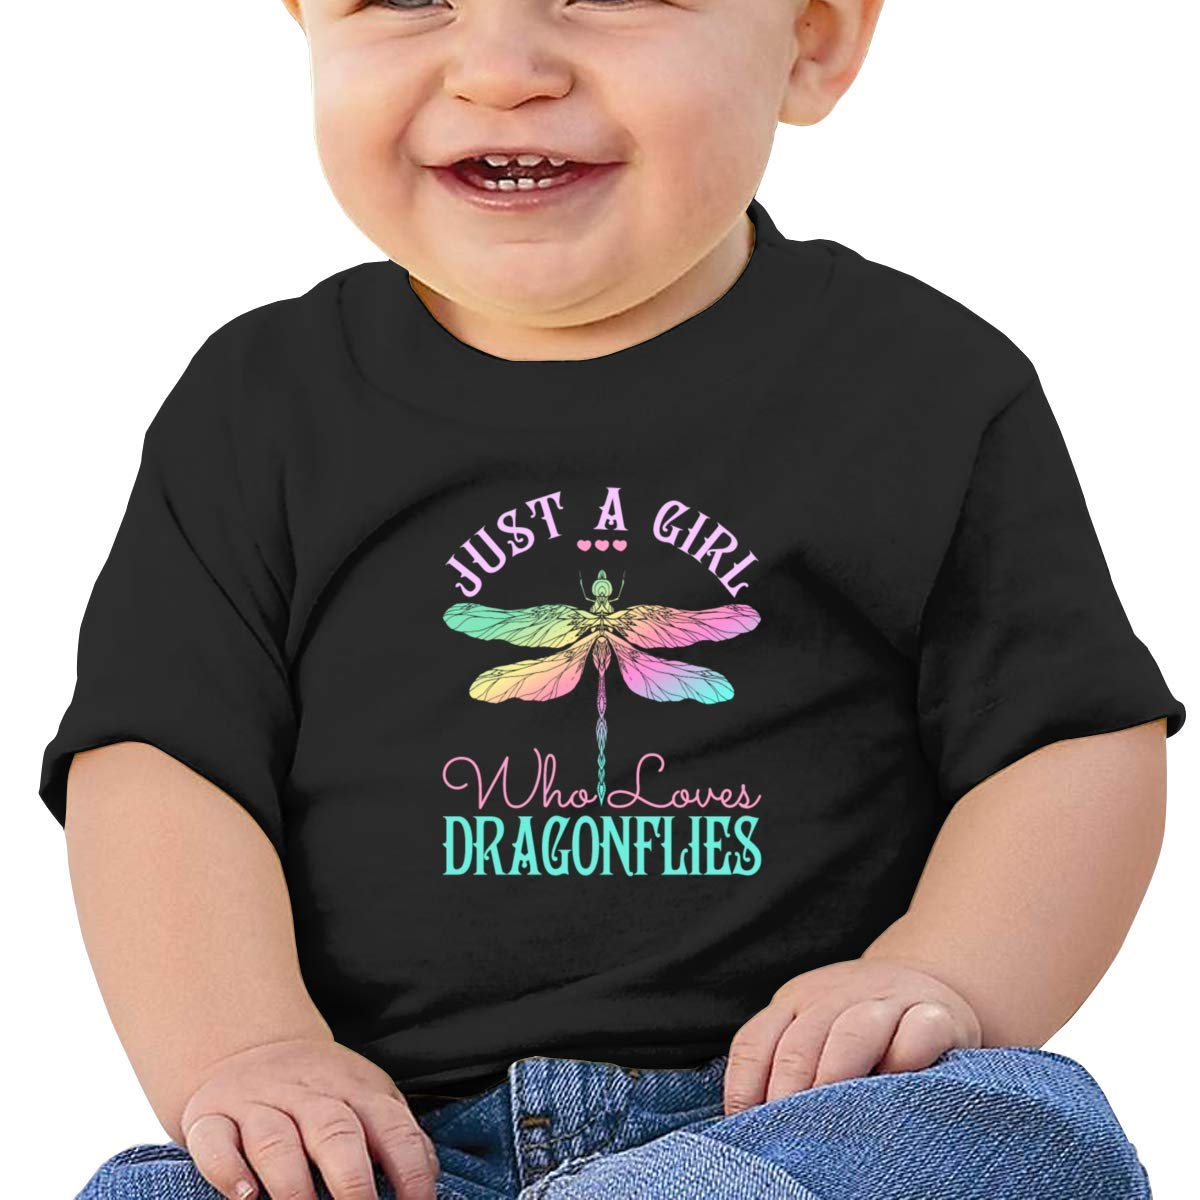 Just A Girl Who Loves Dragonflies Short-Sleeve T-Shirt Baby Girls